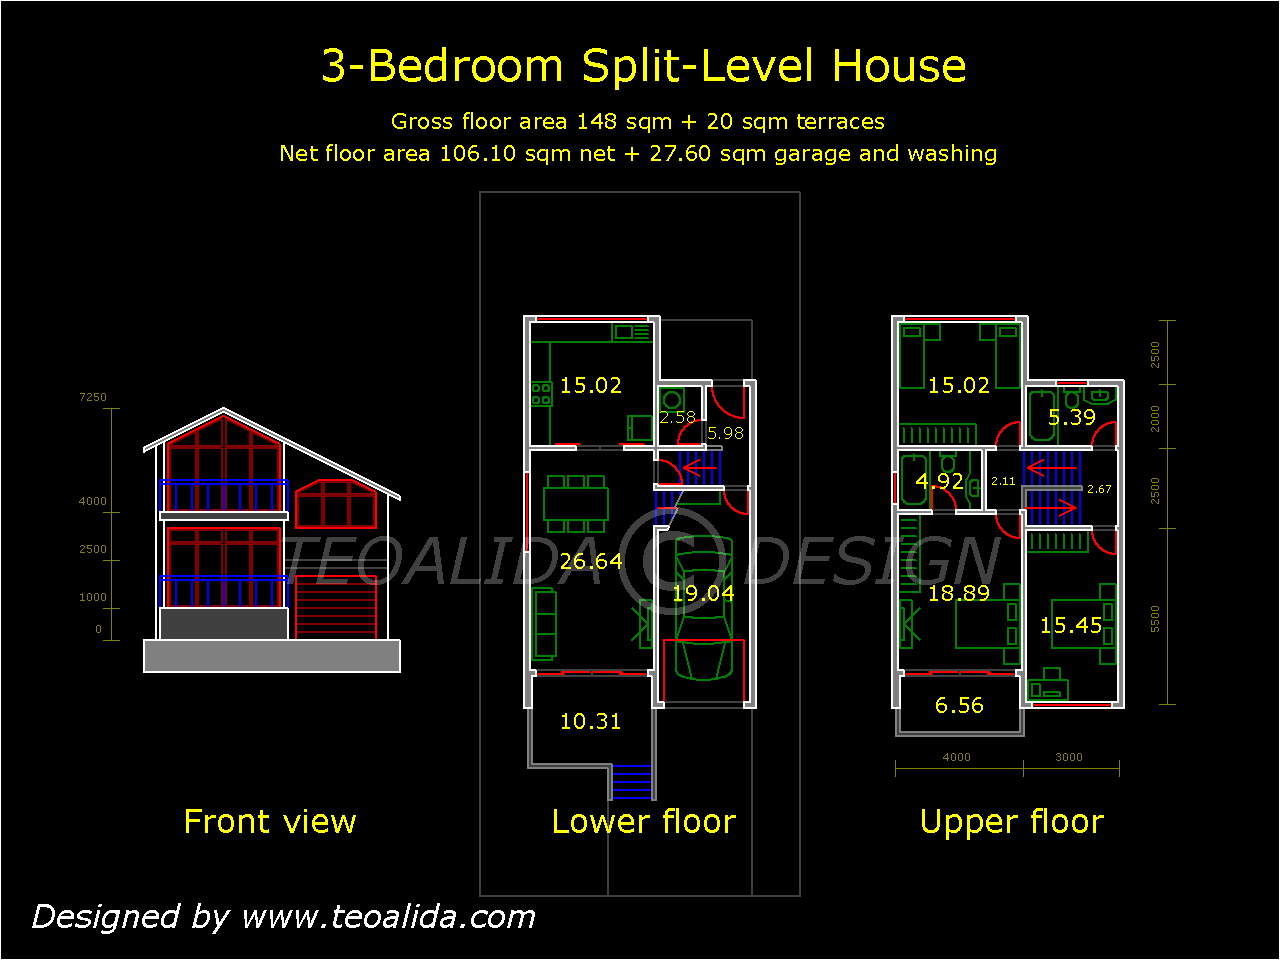 Split-level home with 3 bedrooms and garage